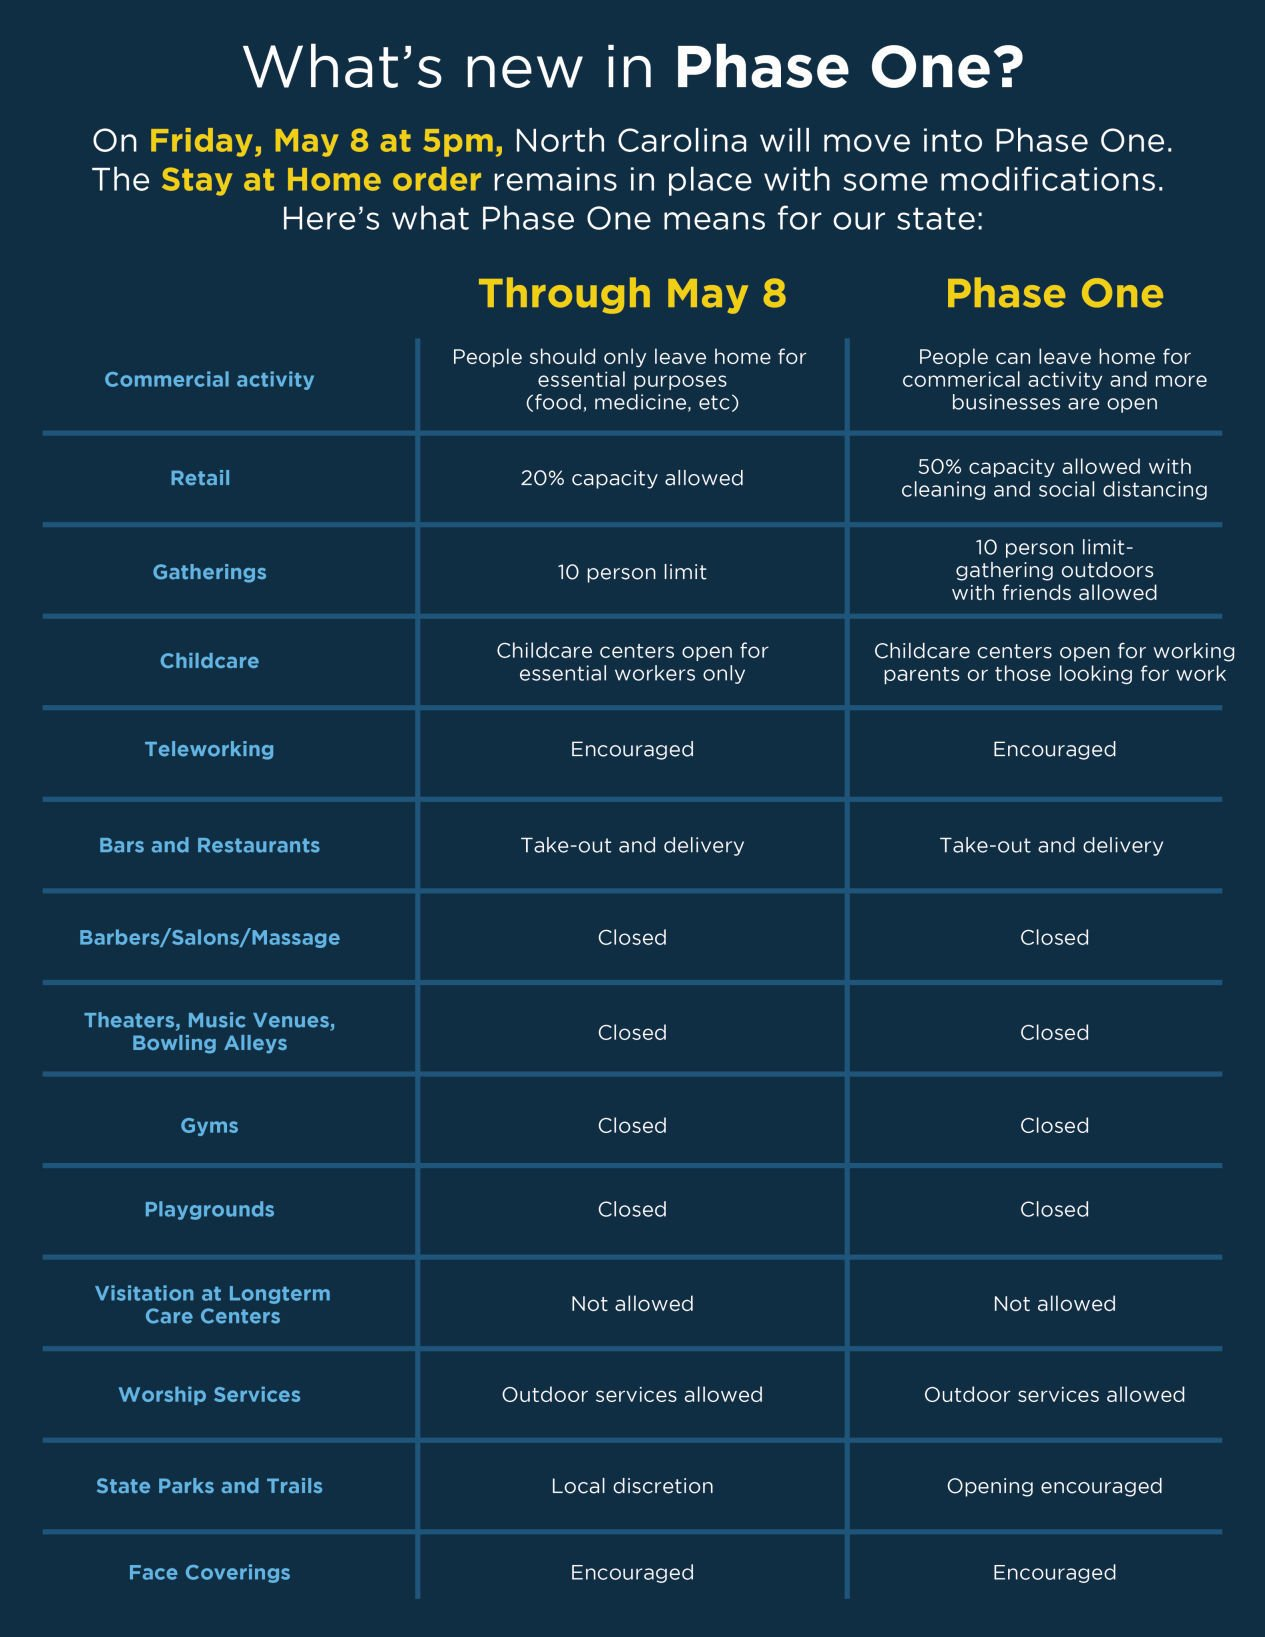 Phase 1: What's different